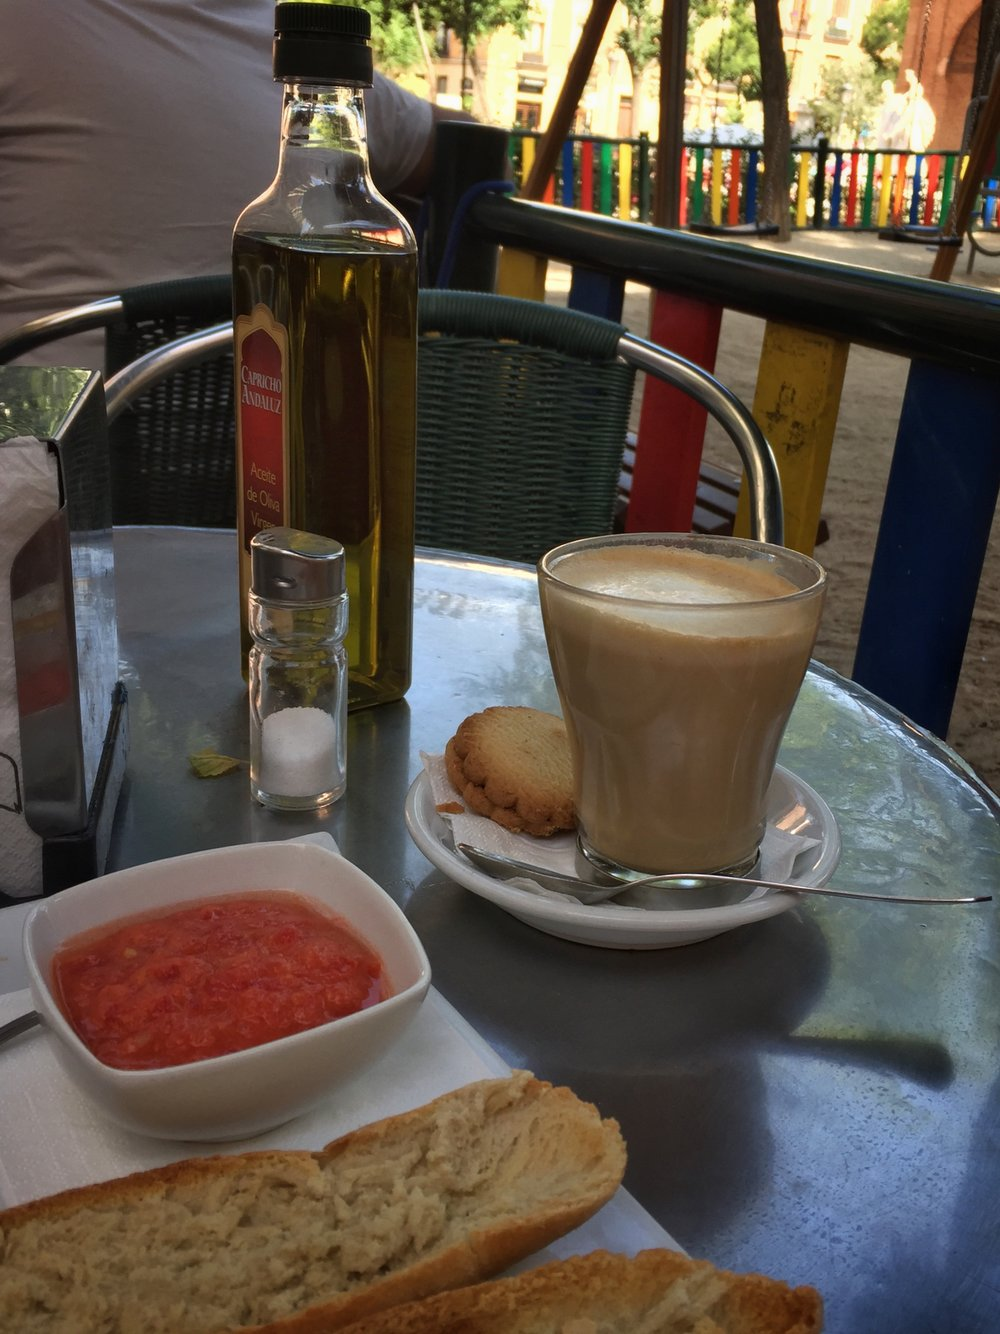 breakfast at Pepe Botella in Madrid